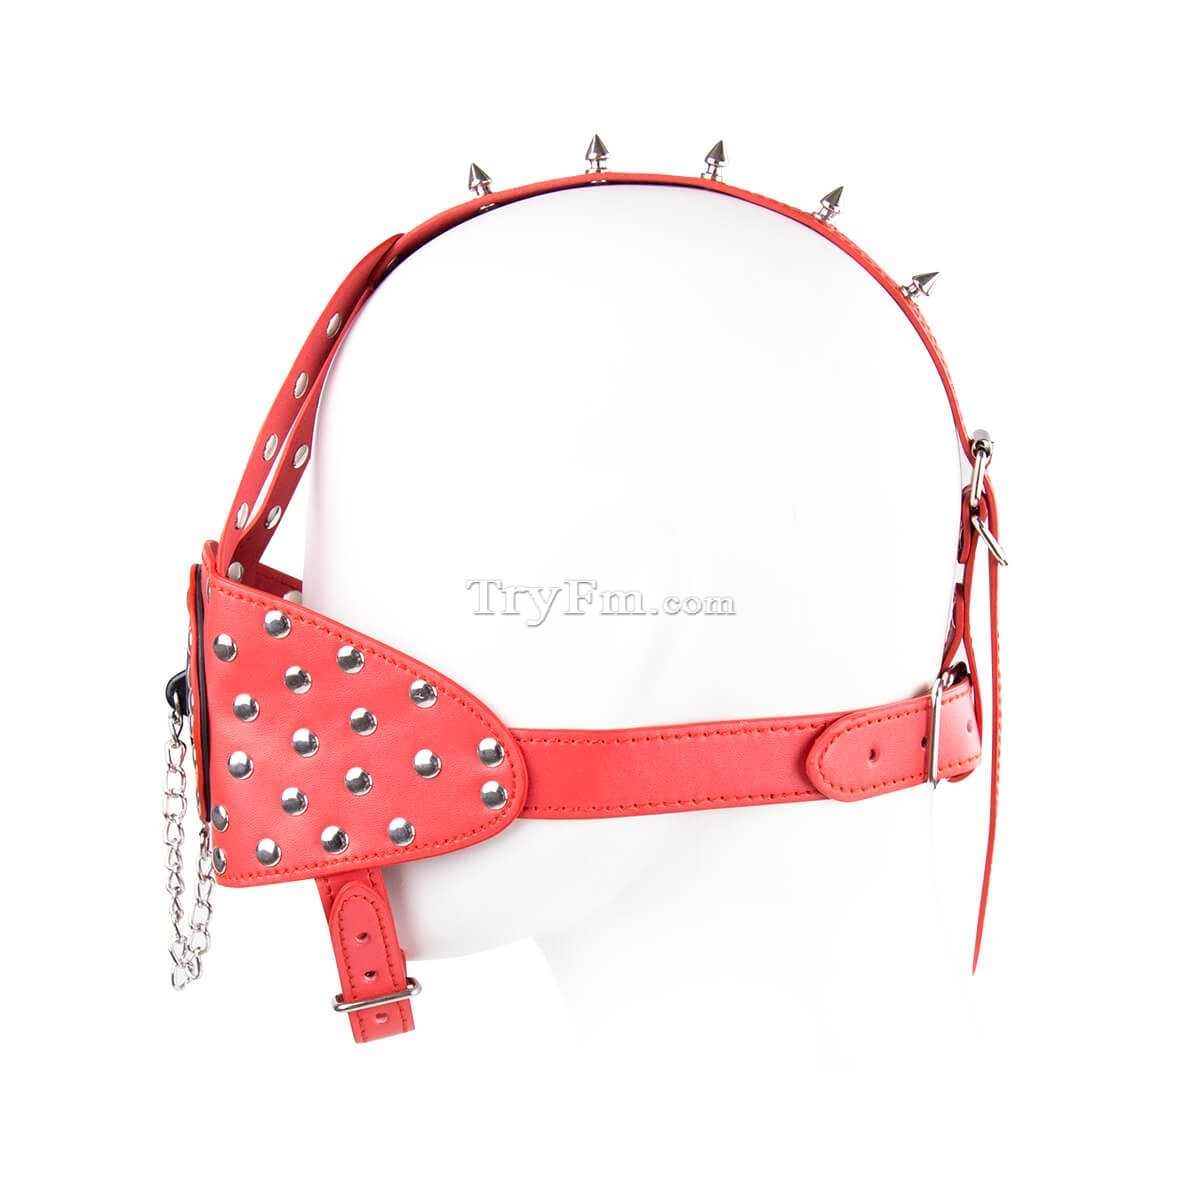 16-Open-Mouth-Head-Harness-10.jpg